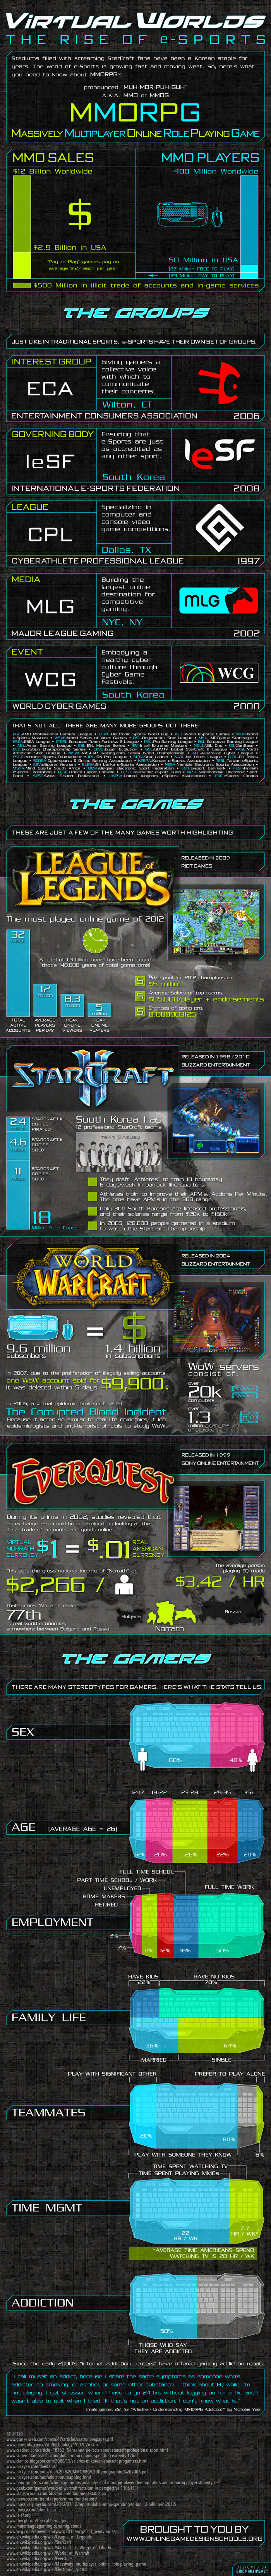 the rise of esports infographic